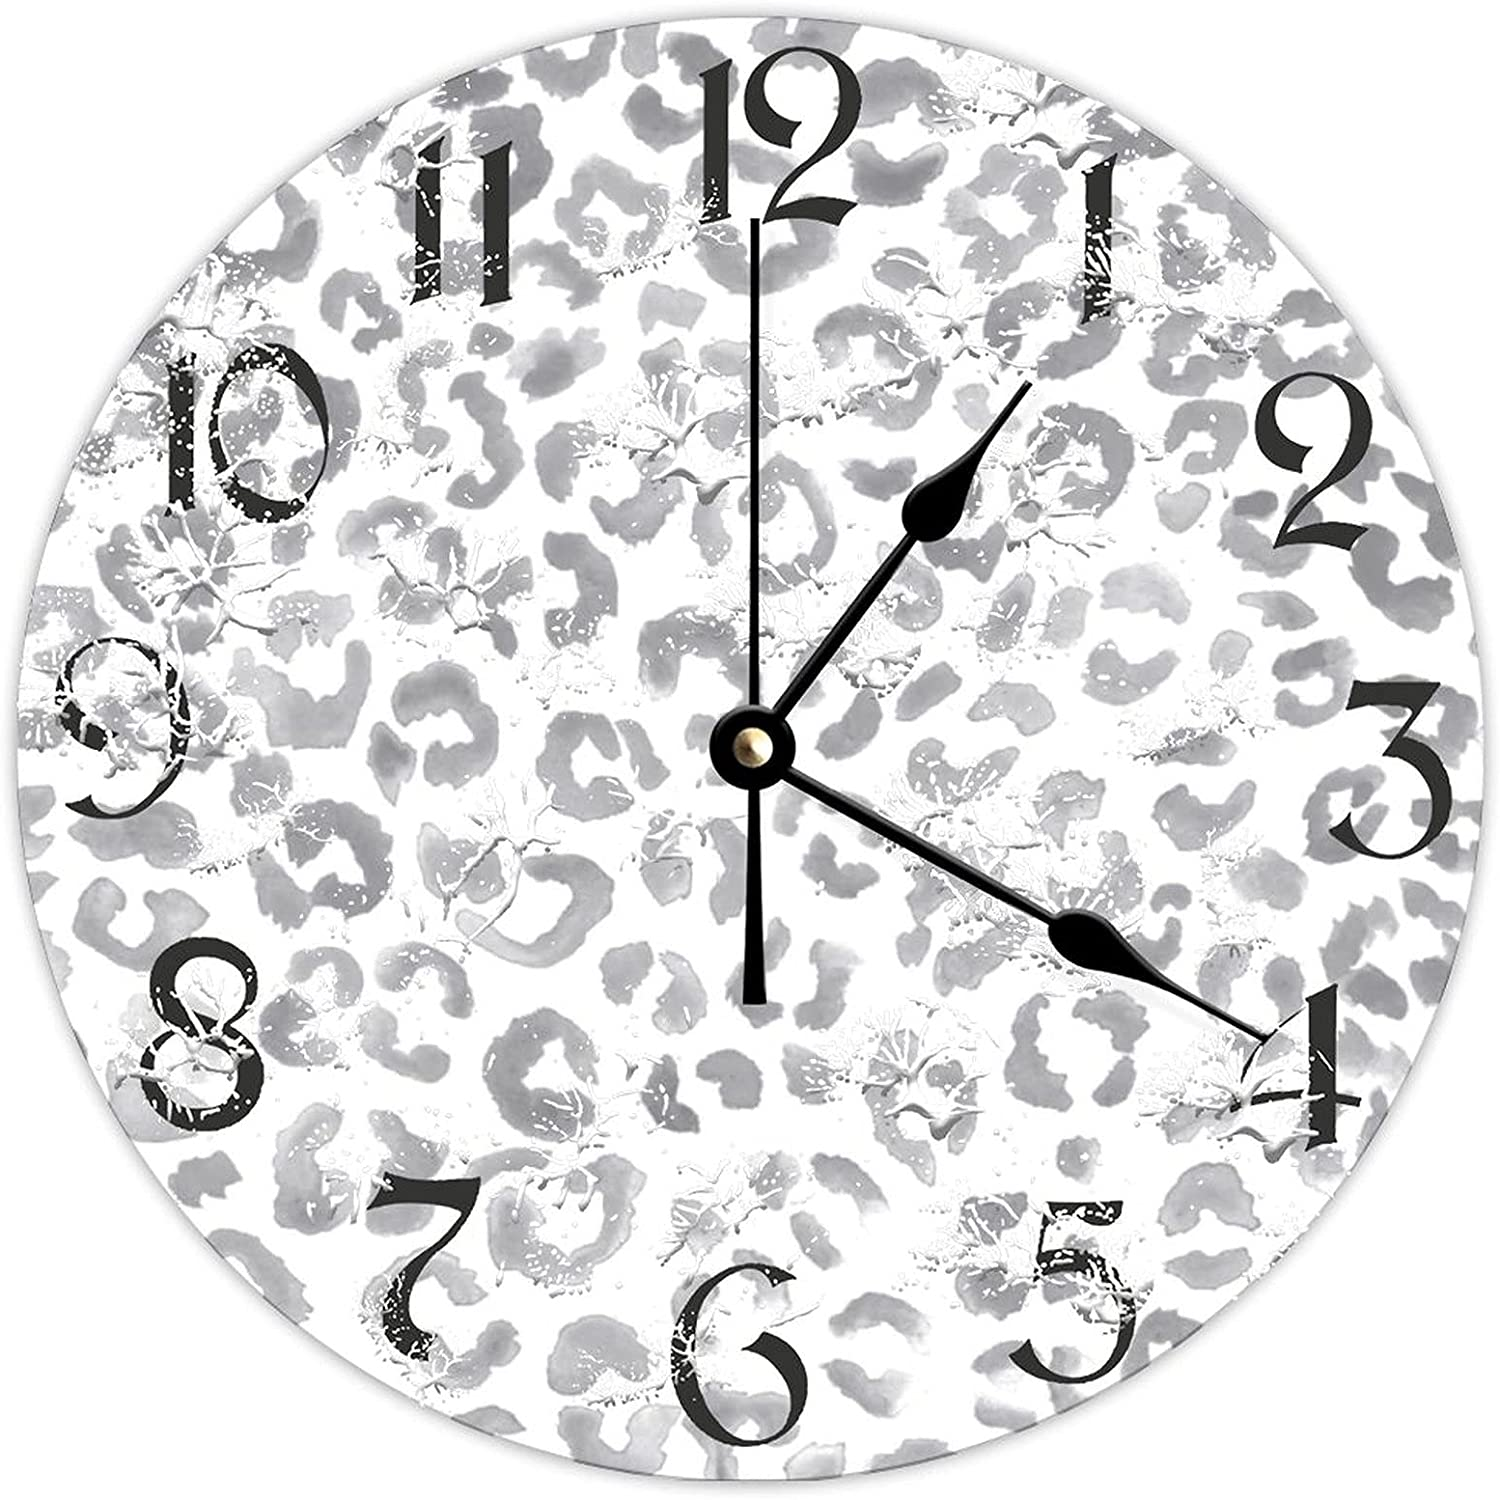 Omaha Mall DKISEE Round Wooden Wall Clock Luxury goods Prin Leopard OperatedGray Battery